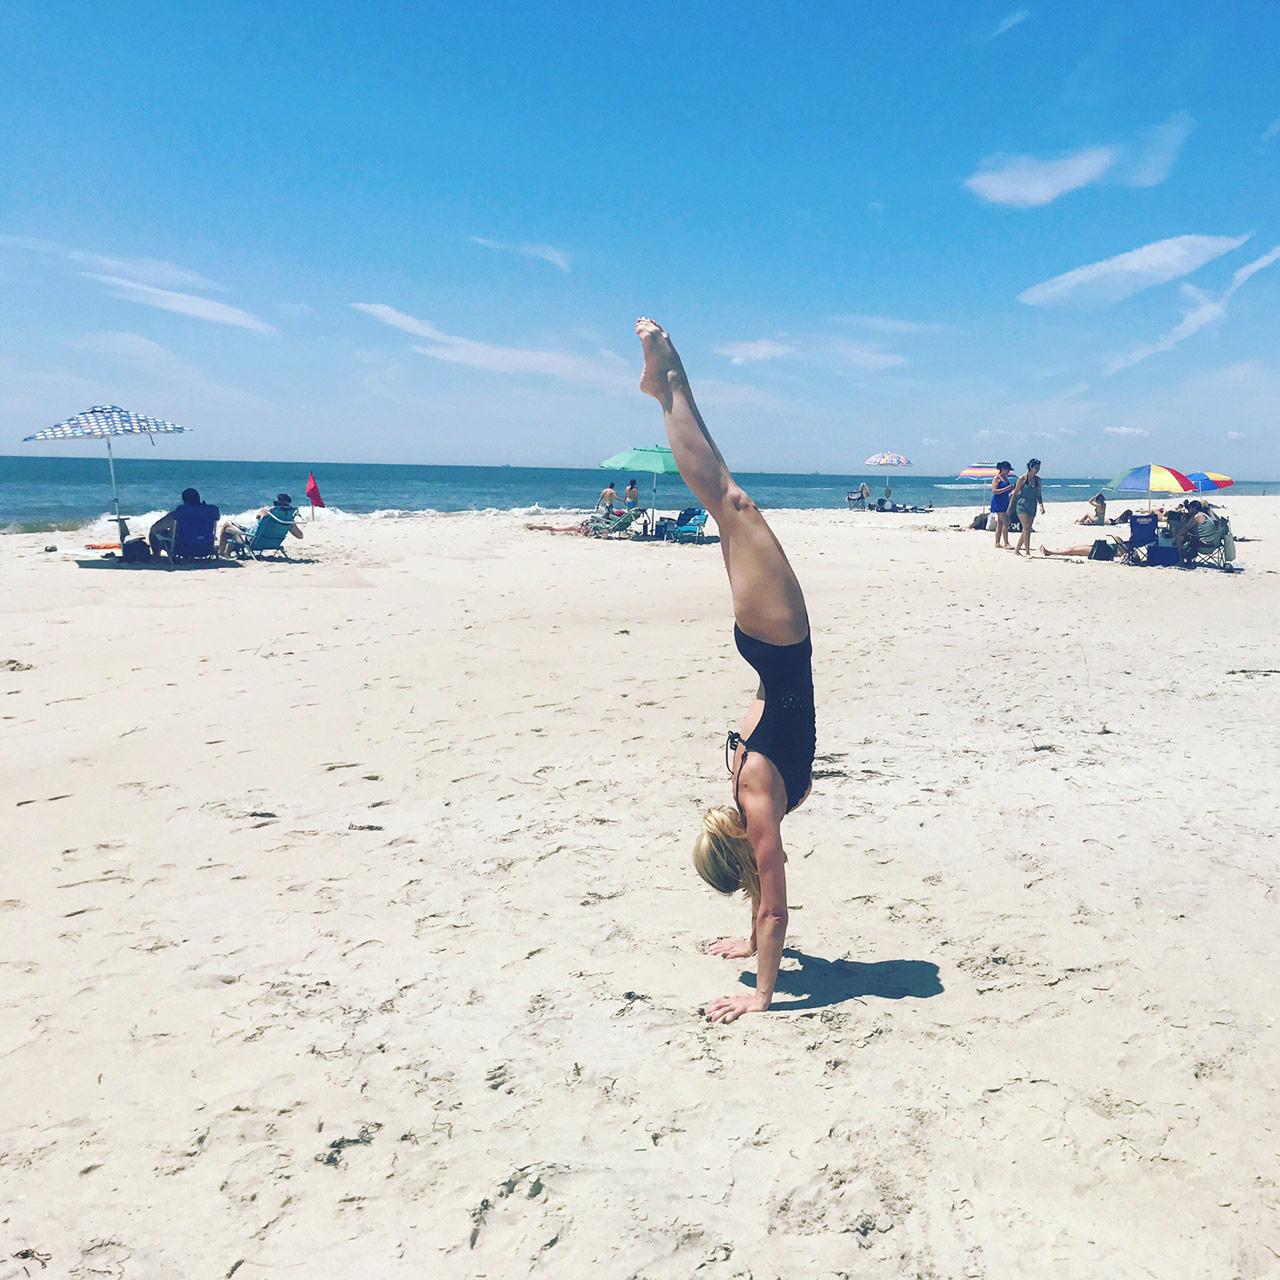 Click to see a larger version of Goldie Oren's Perfect handstand on the beach